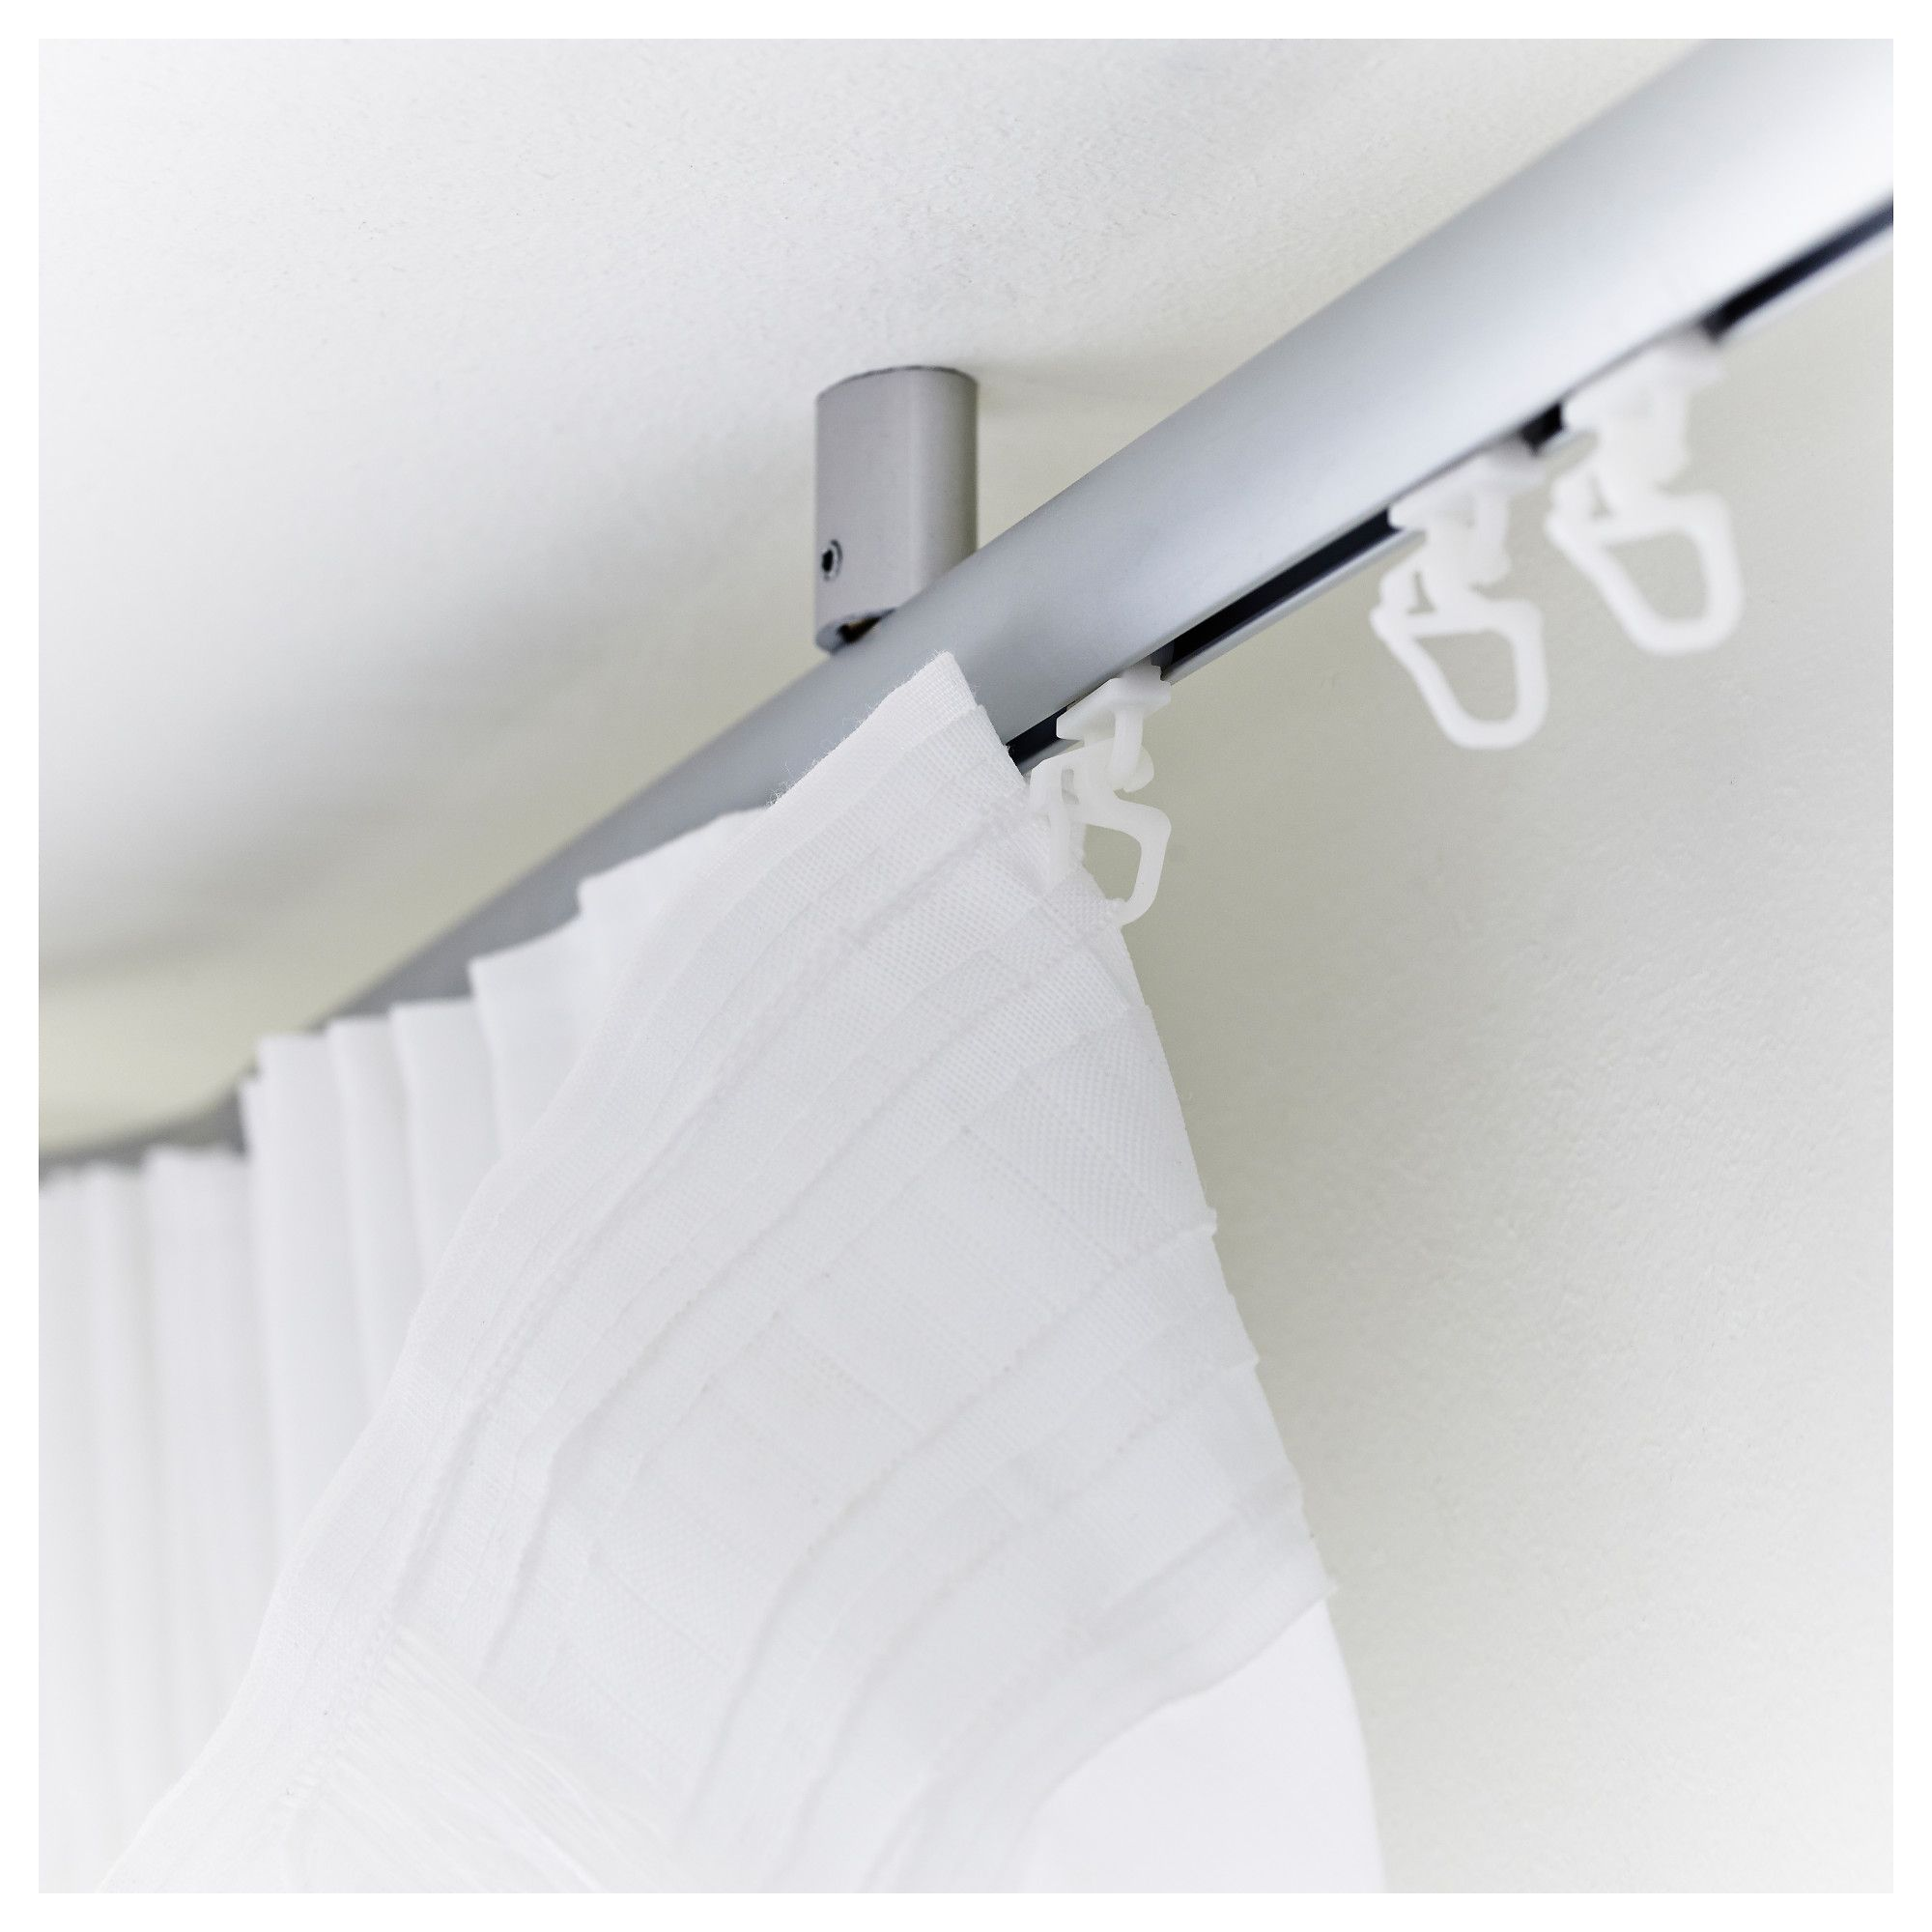 Ikea Kvartal Glider And Hook For Easy Hanging Of Curtains With Kvartal Curtain Suspension